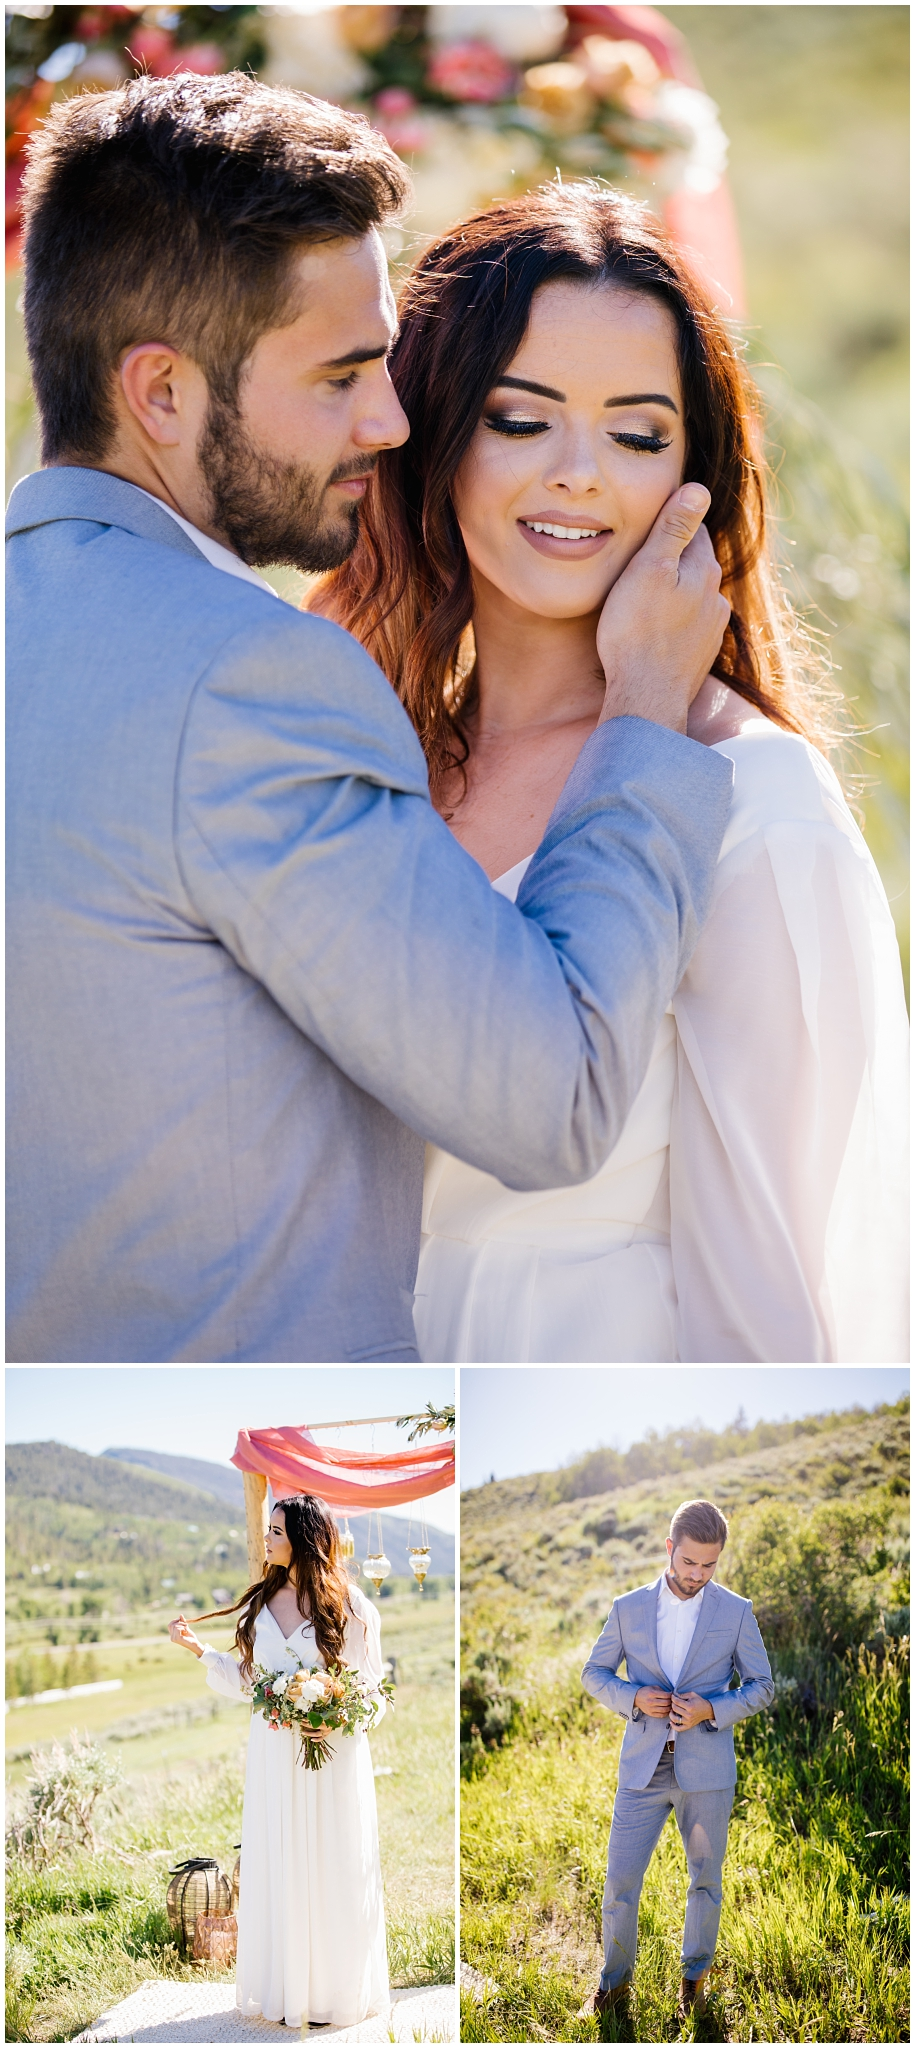 MountainShoot-21_Lizzie-B-Imagery-Utah-Wedding-Photographer-Park-City-Salt-Lake-City-Oakley-Utah-North-Forty-Escapes.jpg